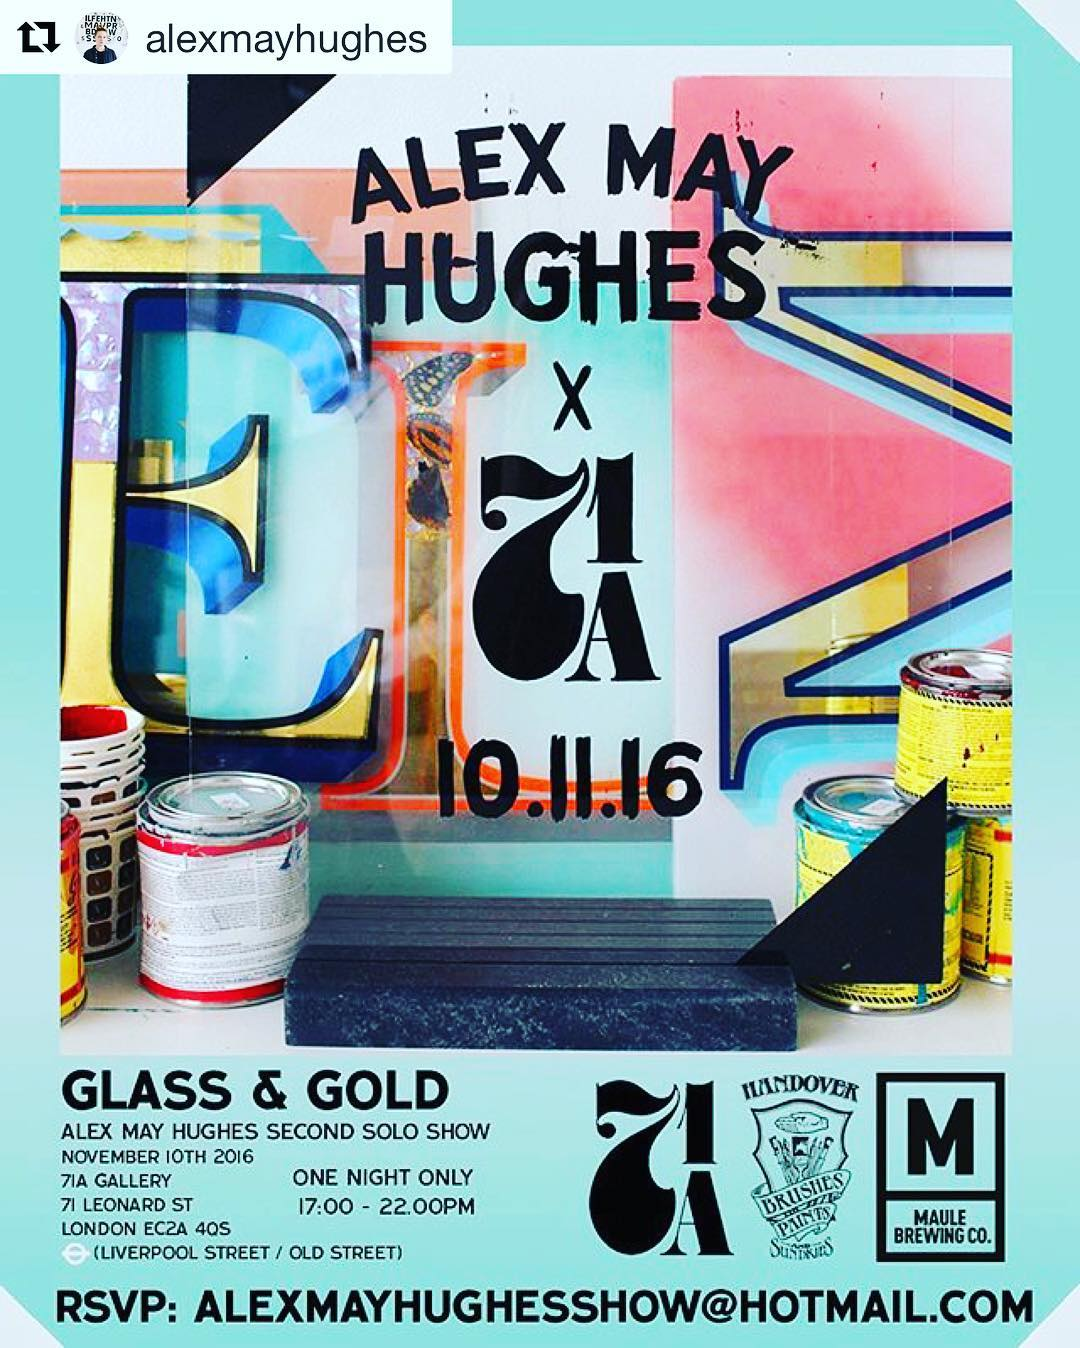 Repost alexmayhughes with repostapp  This is tommorw night athellip